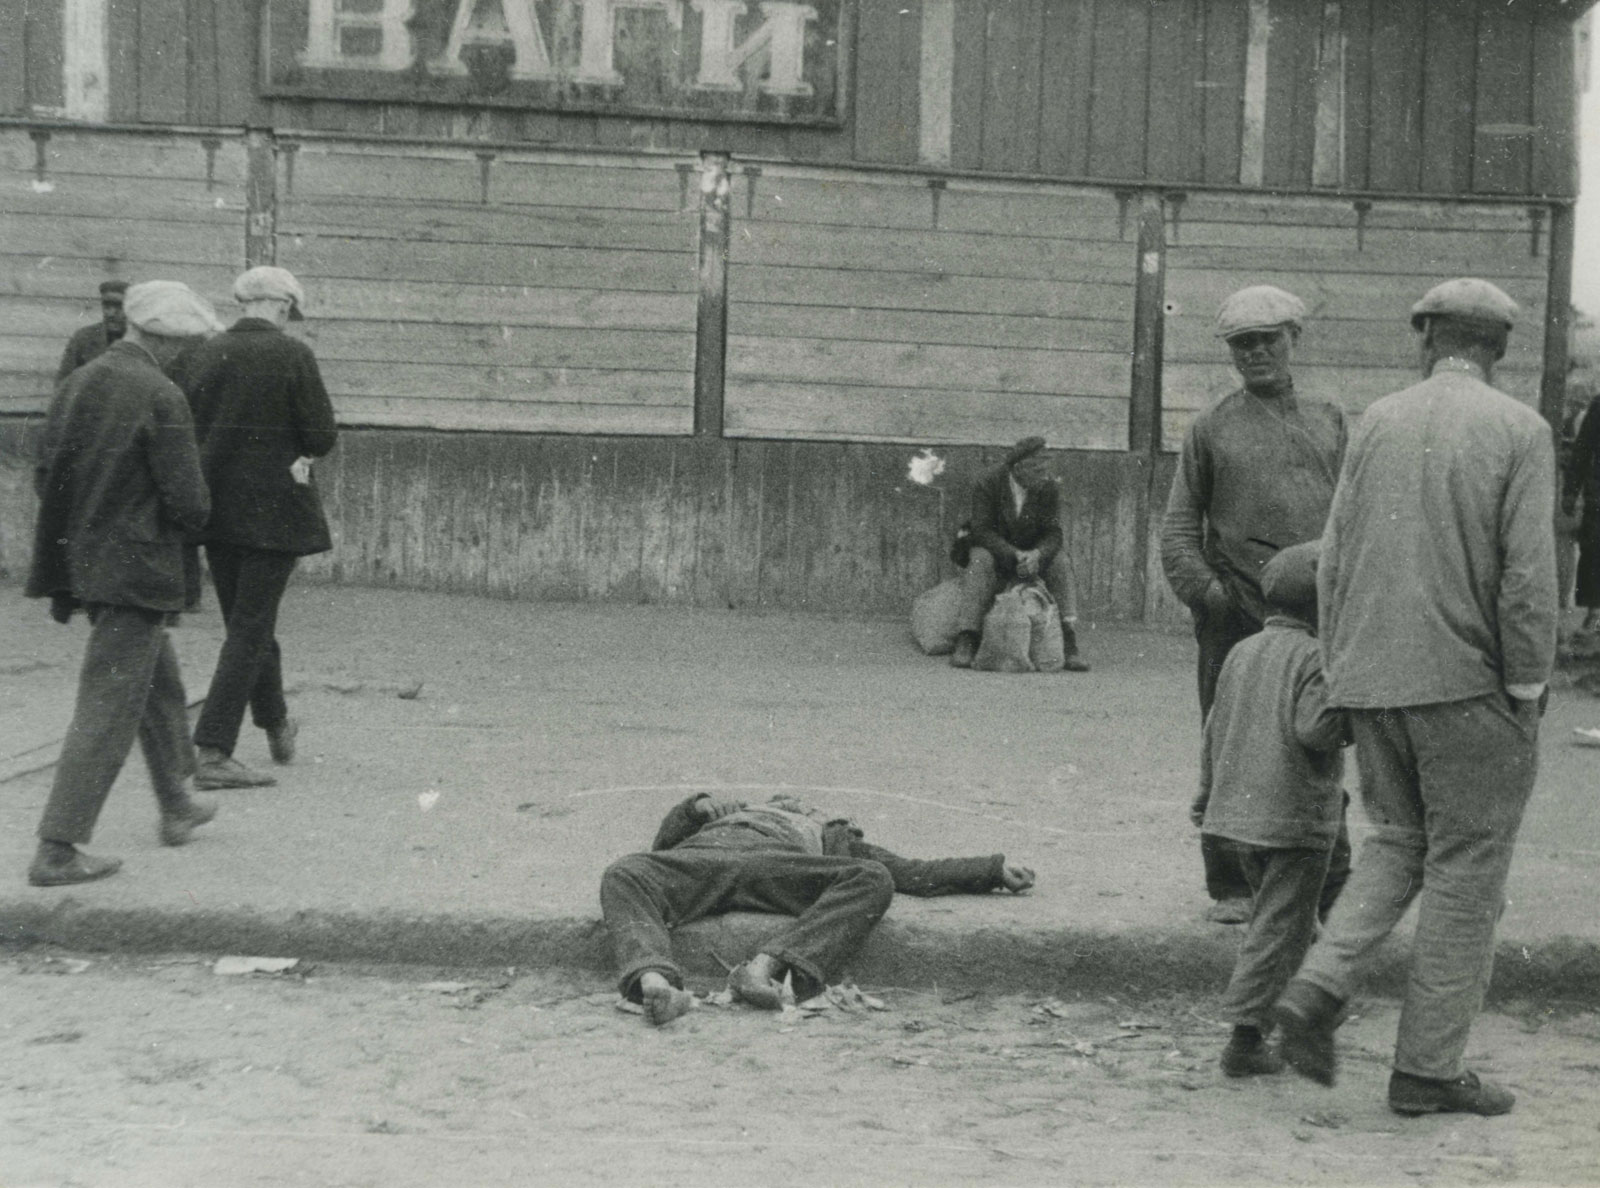 Street in Kharkov, 1932 Passers indifferently pass by the starving people.